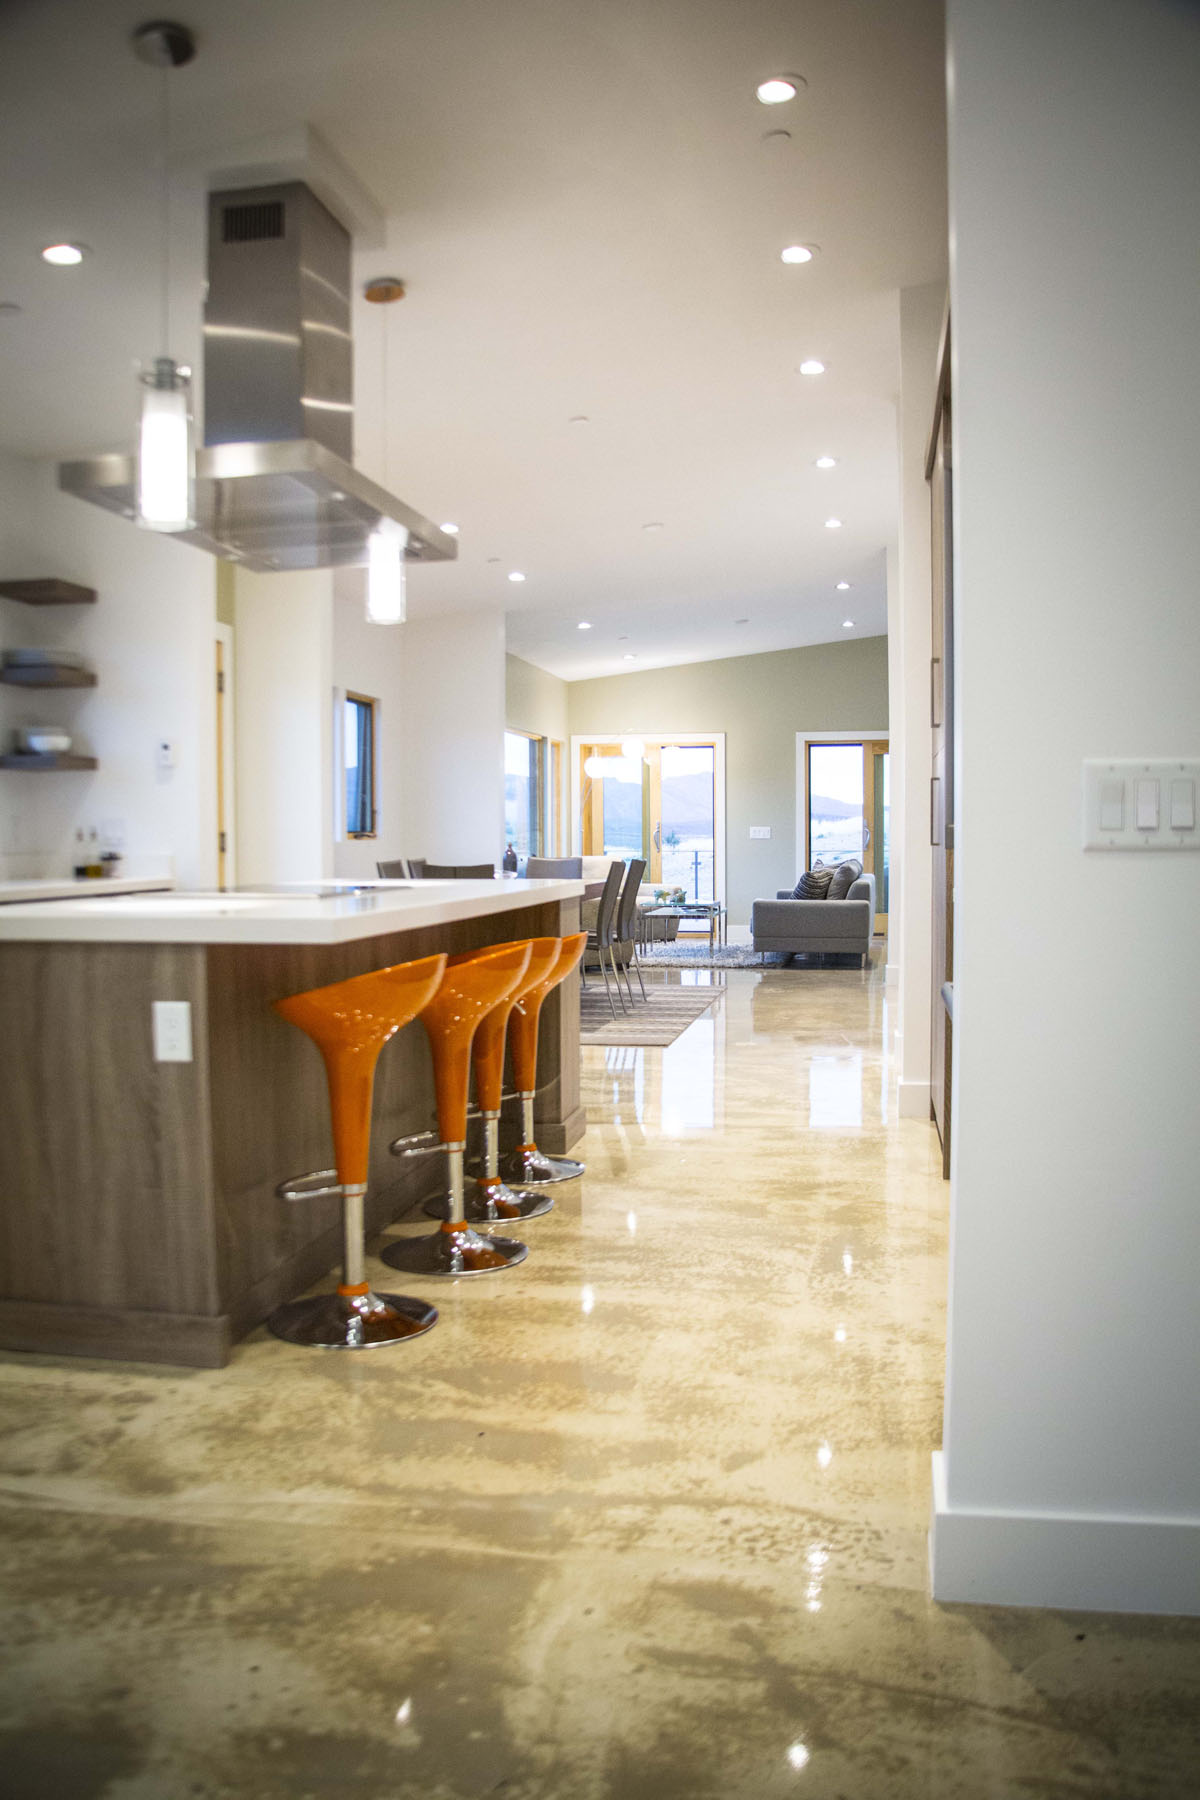 Modern home with open kitchen floor plan leading straight to a seating area beyond.